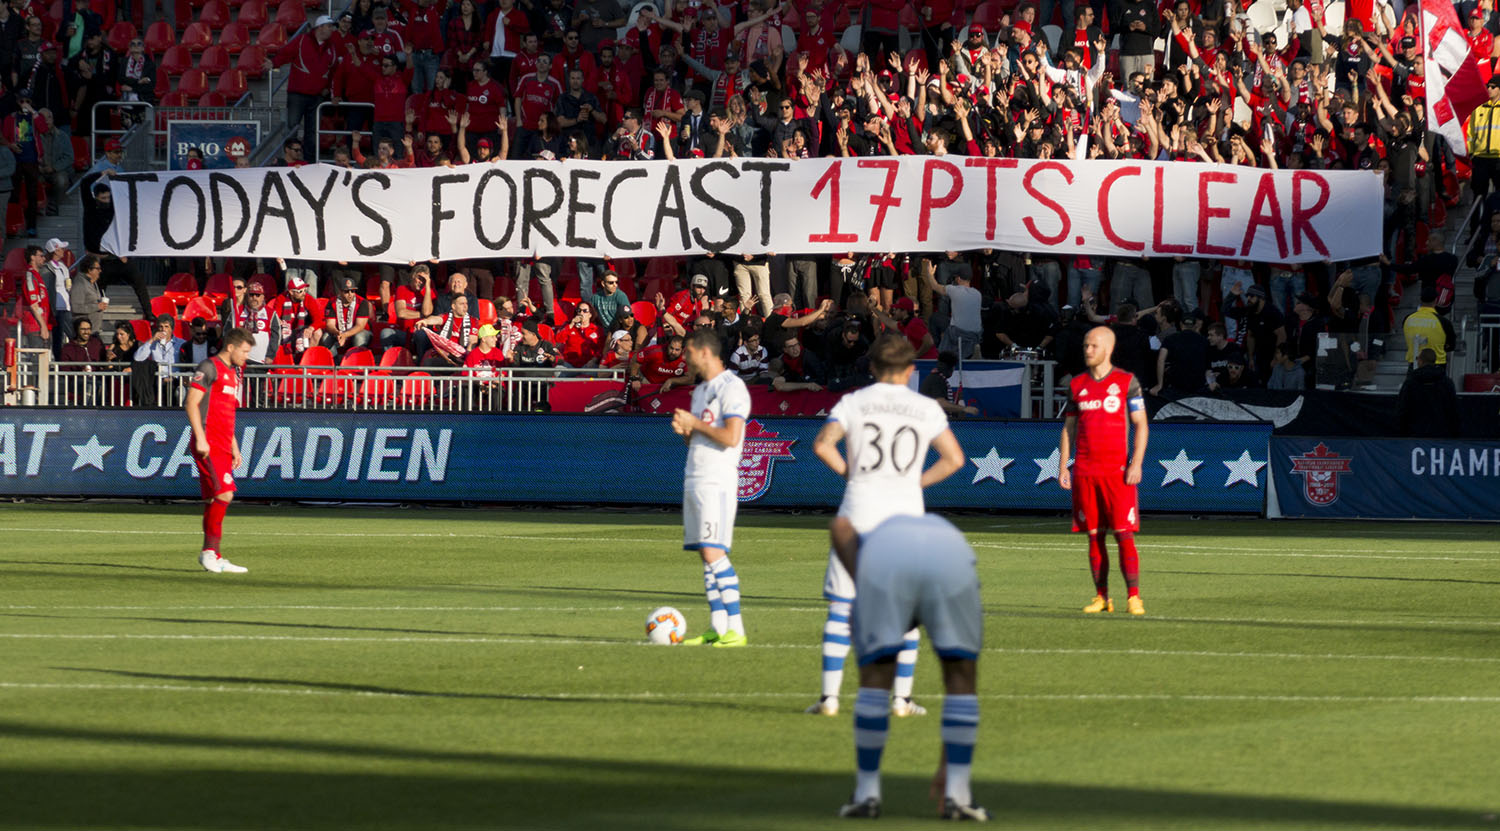 Today's forecast 17 pts. clear reads the banner unraveled by the south end supporter's section in reference to the amount of points Toronto FC are ahead the Montreal Impact in the MLS regular season table.Image by Dennis Marciniak of denMAR Media.